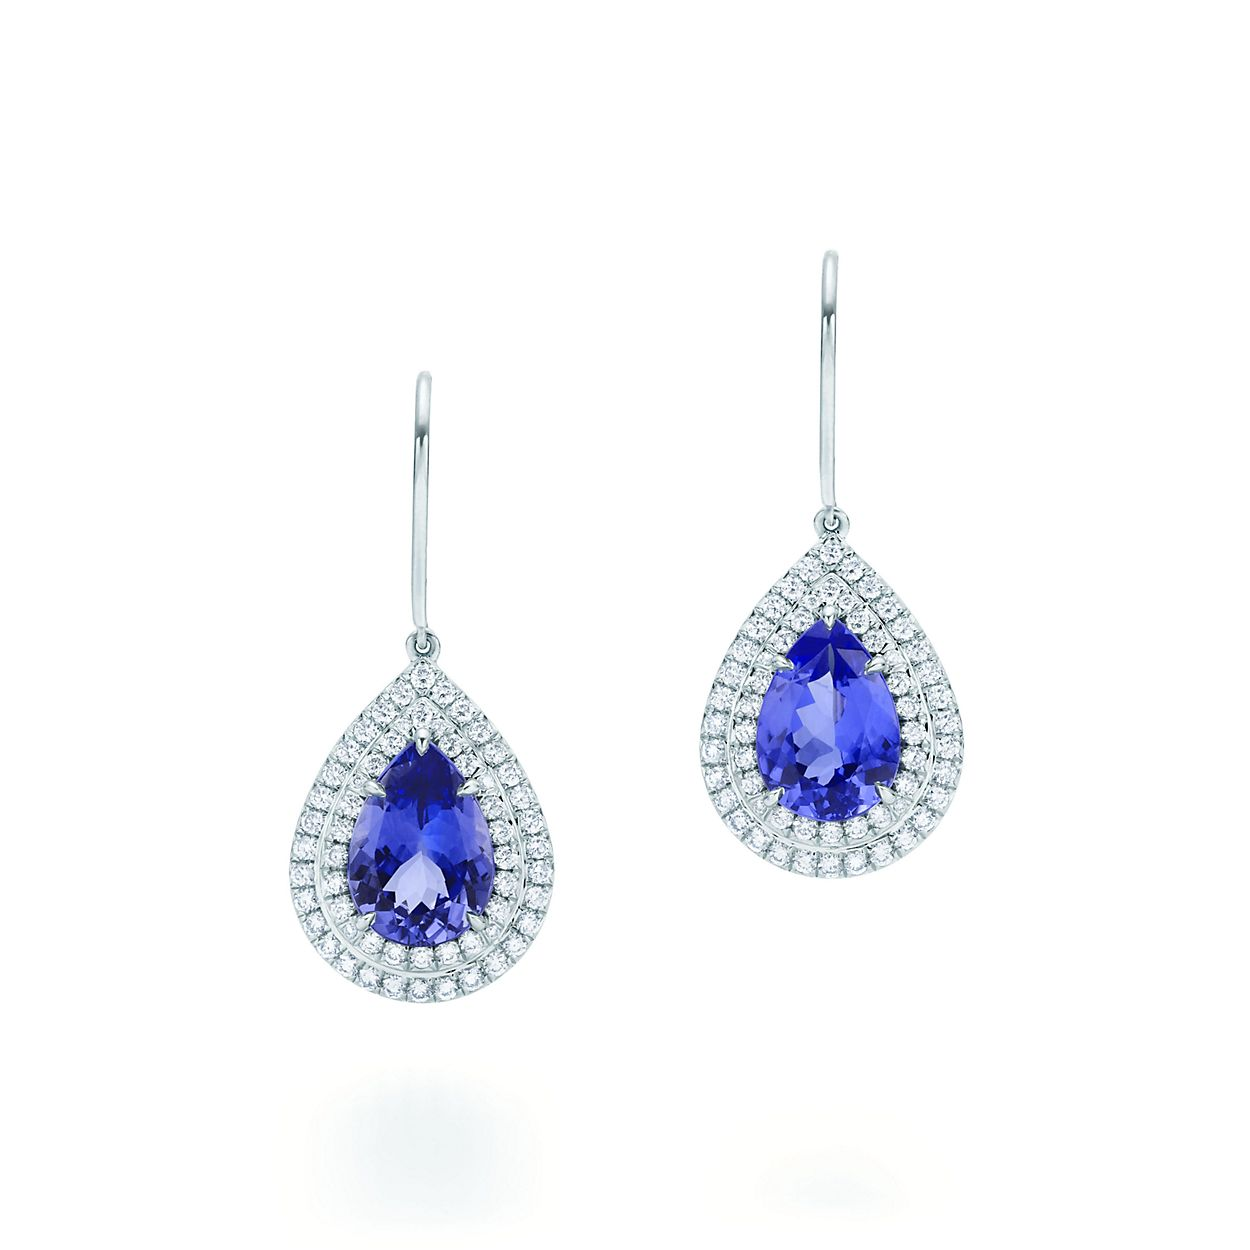 52e4ba42e Completely new Tiffany Soleste earrings in platinum with tanzanites and  diamonds QR43